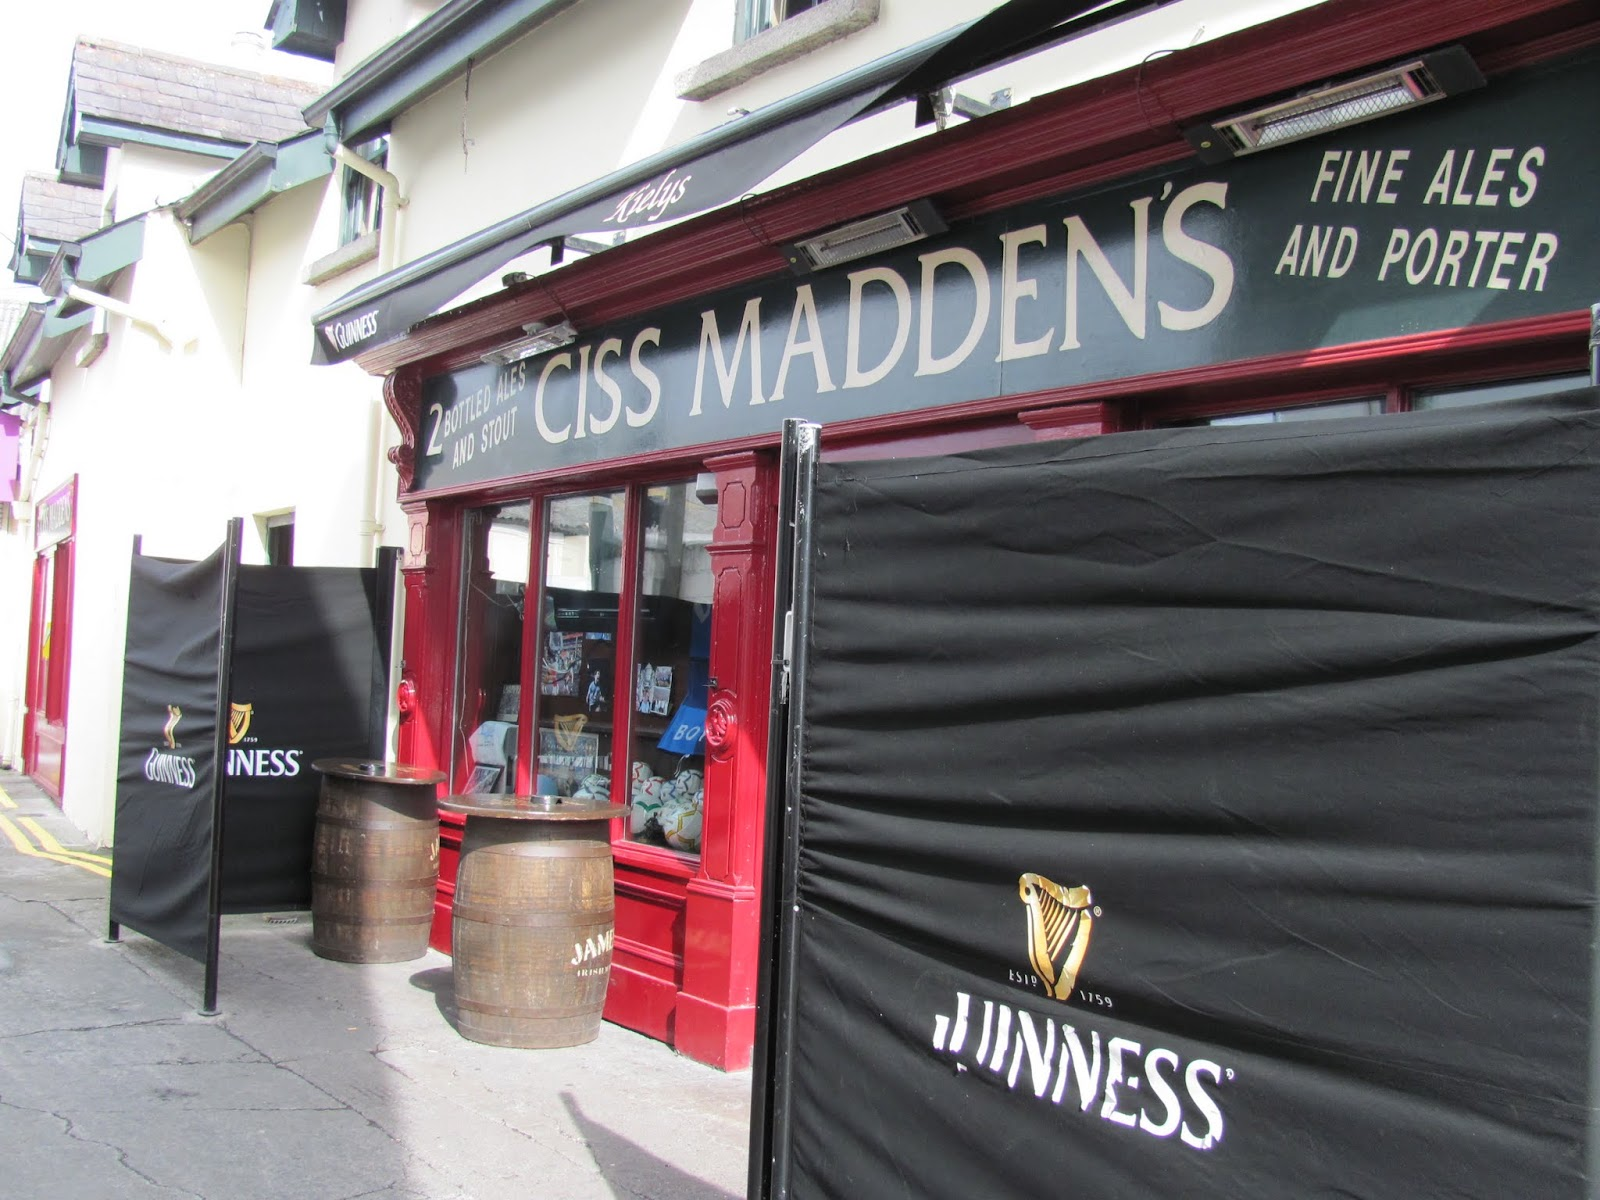 The entrance to Ciss Madden's Pub, attached to Keily's of Donnybrook in Dublin, Ireland